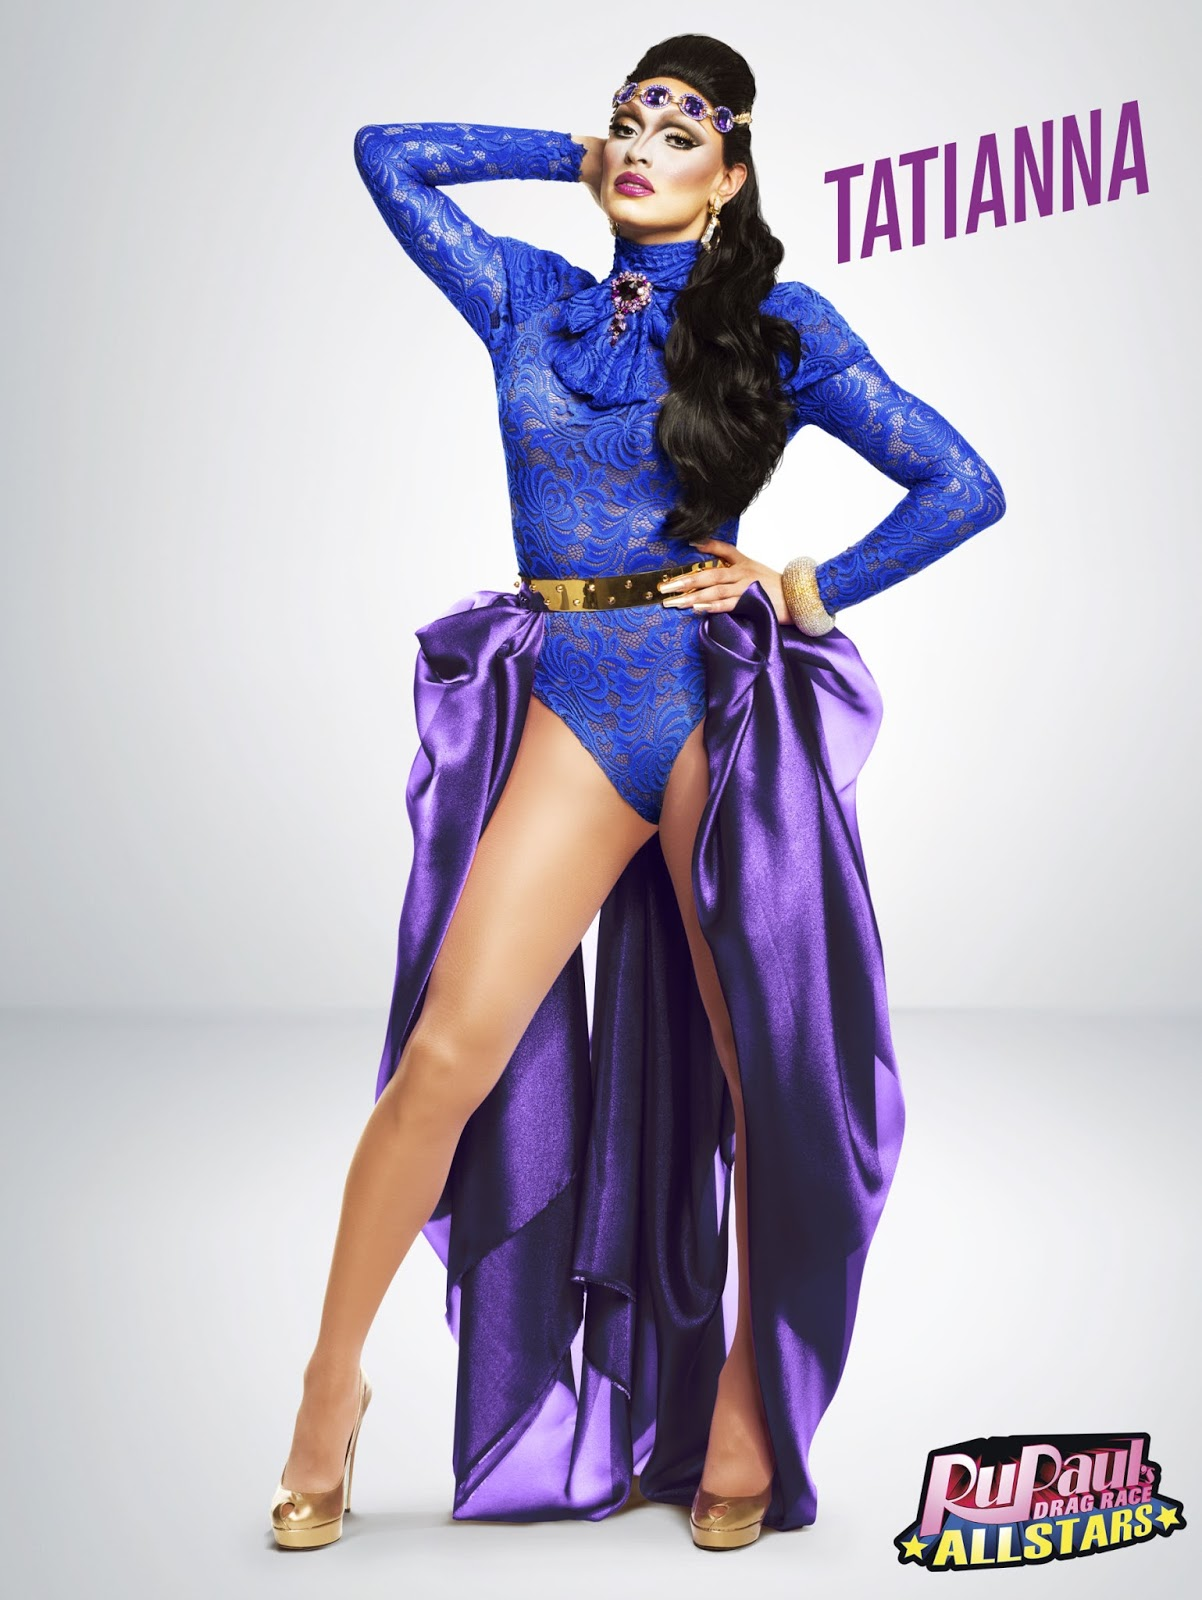 53ecdb452193 Season 2. I was not expecting that. My whole thought process for them  choosing contestants for All Stars 2 is that they would pick queens from  season 4-8.